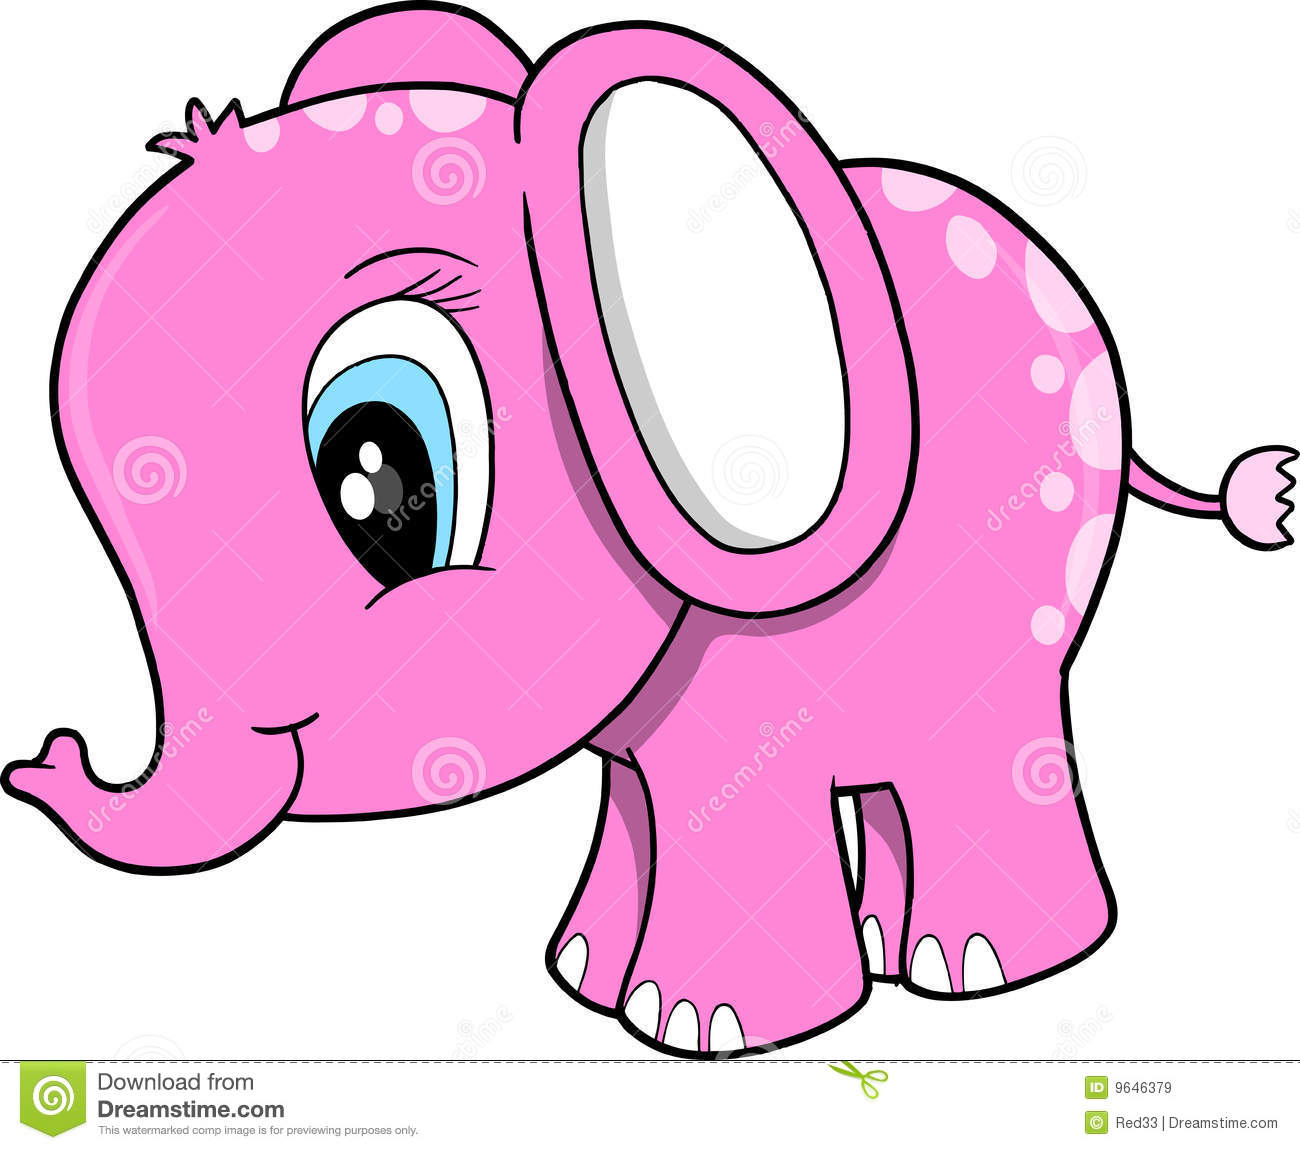 elephant clipart panda - photo #17